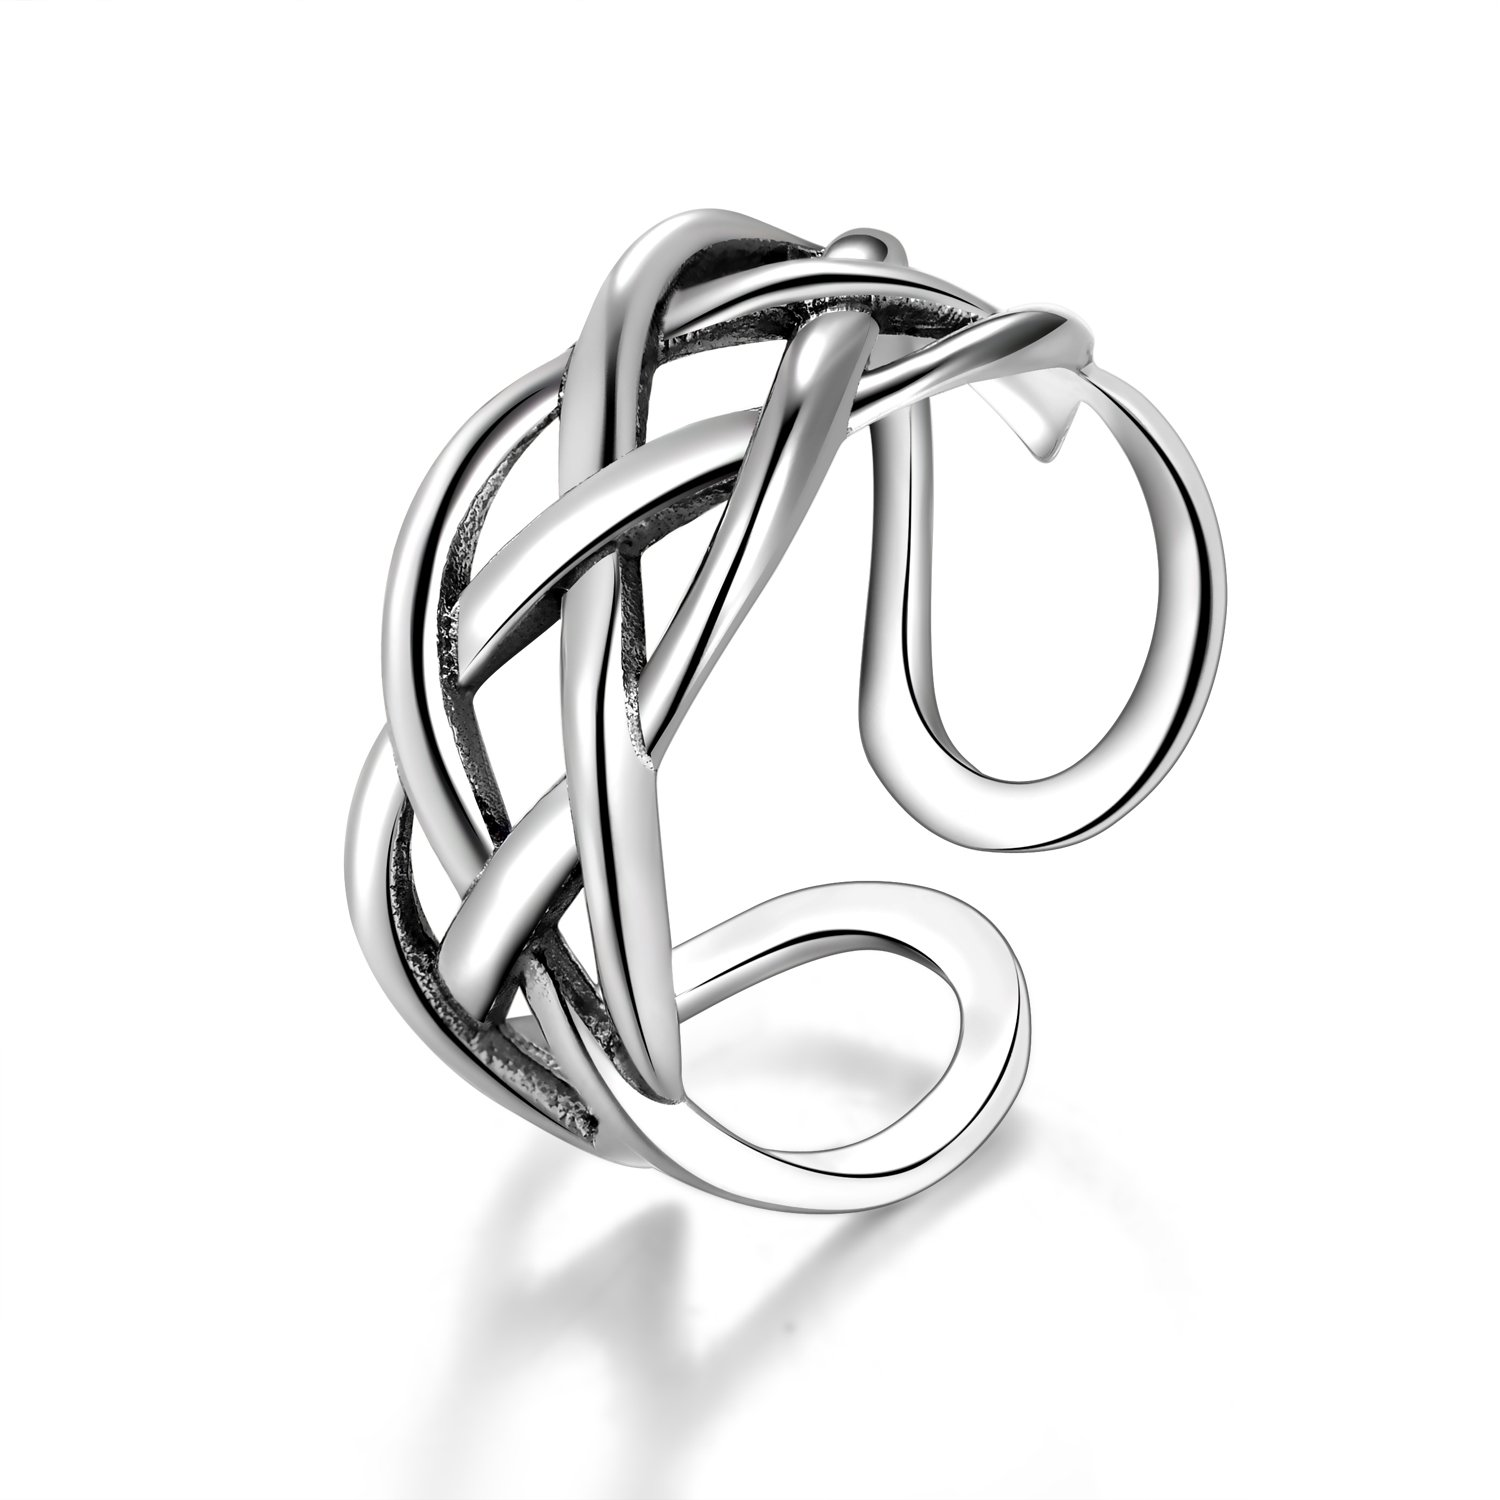 Candyfancy Love Celtic Knot Ring 925 Sterling Silver Toe Ring Open Adjustable for Women Girls Size 4-6 R133